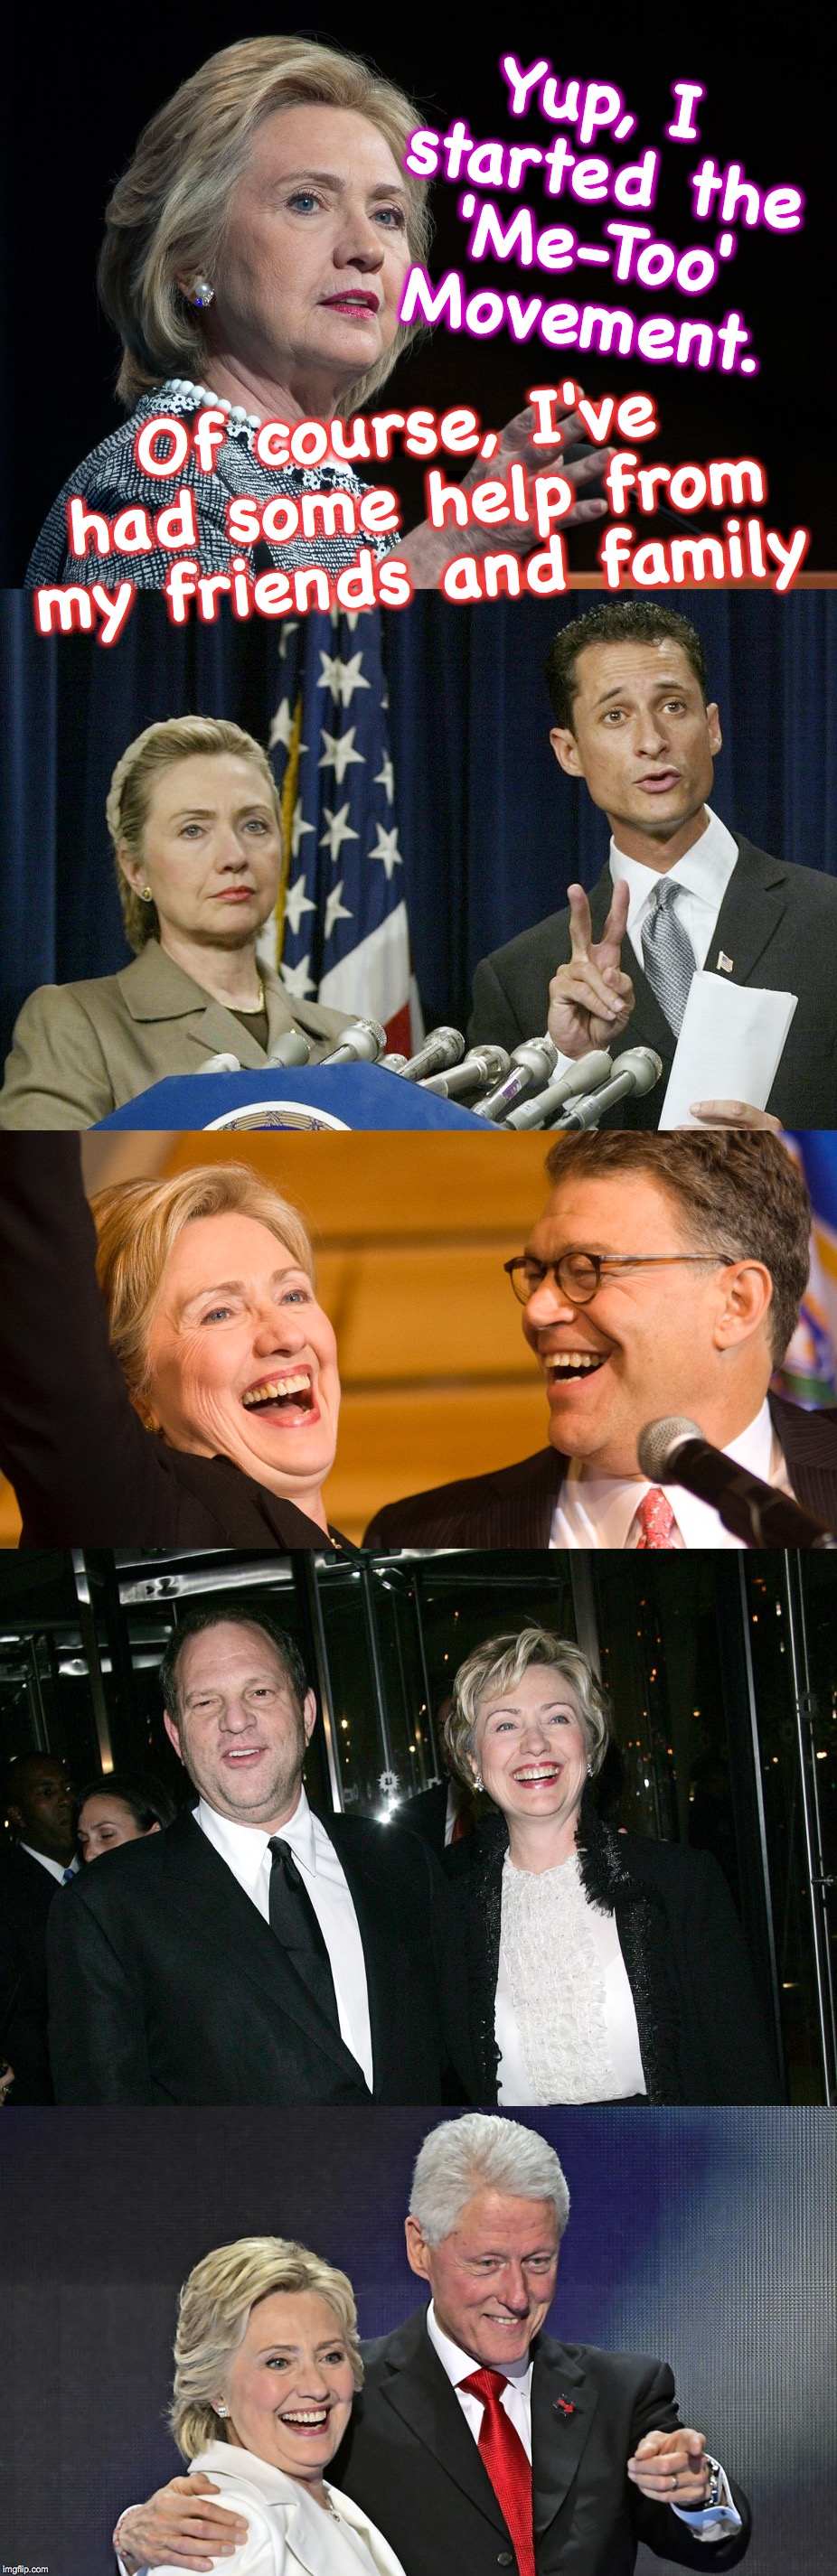 file under: 'it takes one' | Yup, I started the 'Me-Too' Movement. Of course, I've had some help from my friends and family | image tagged in hillary clinton,me too,harvey weinstein,anthony weiner,al franken,bill clinton | made w/ Imgflip meme maker